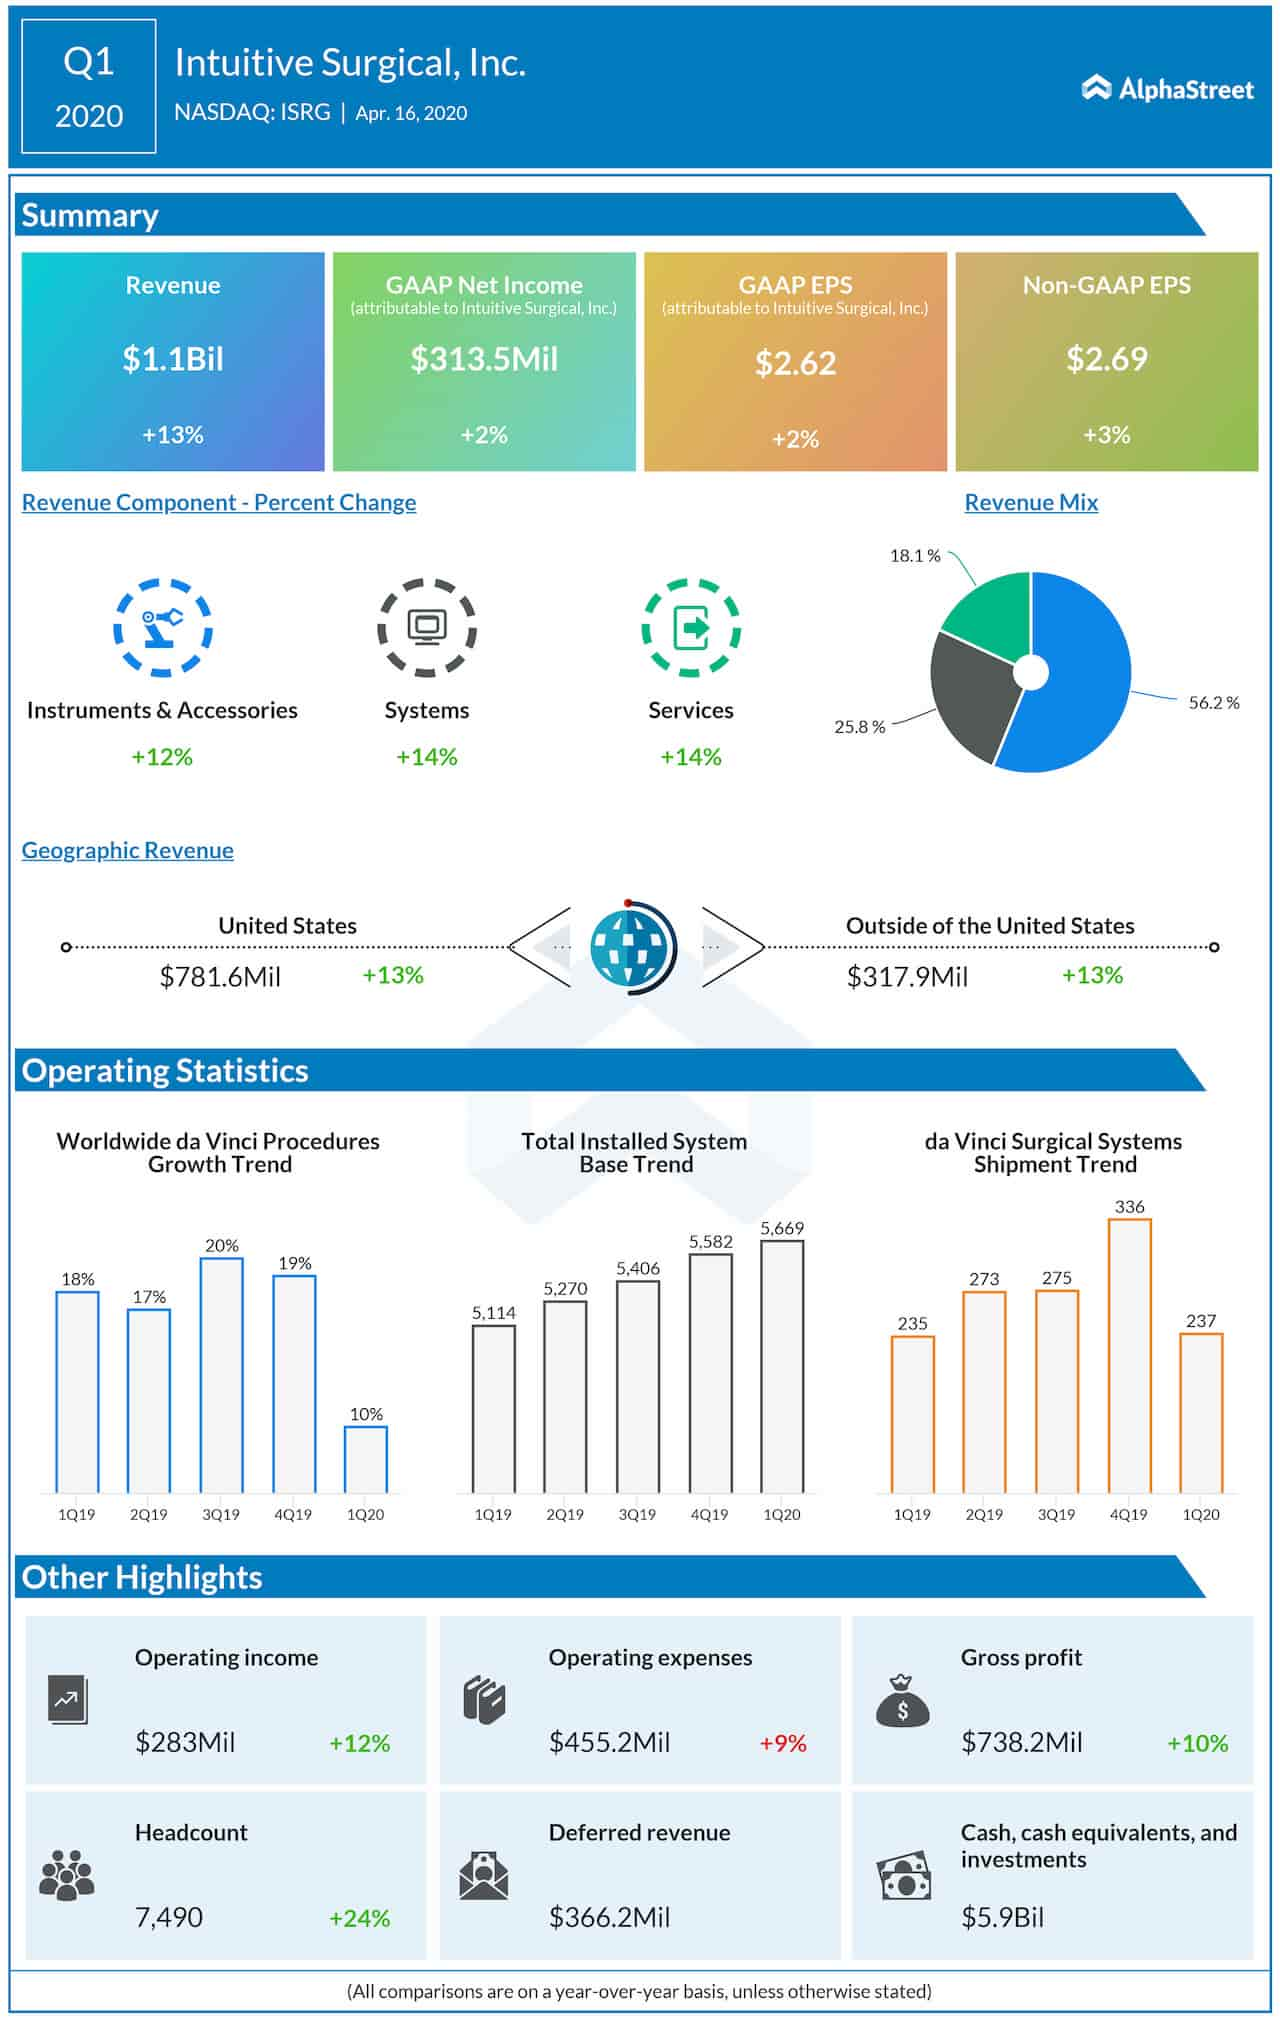 Infographic: Intuitive Surgical (ISRG) Q1 2020 Earnings Results